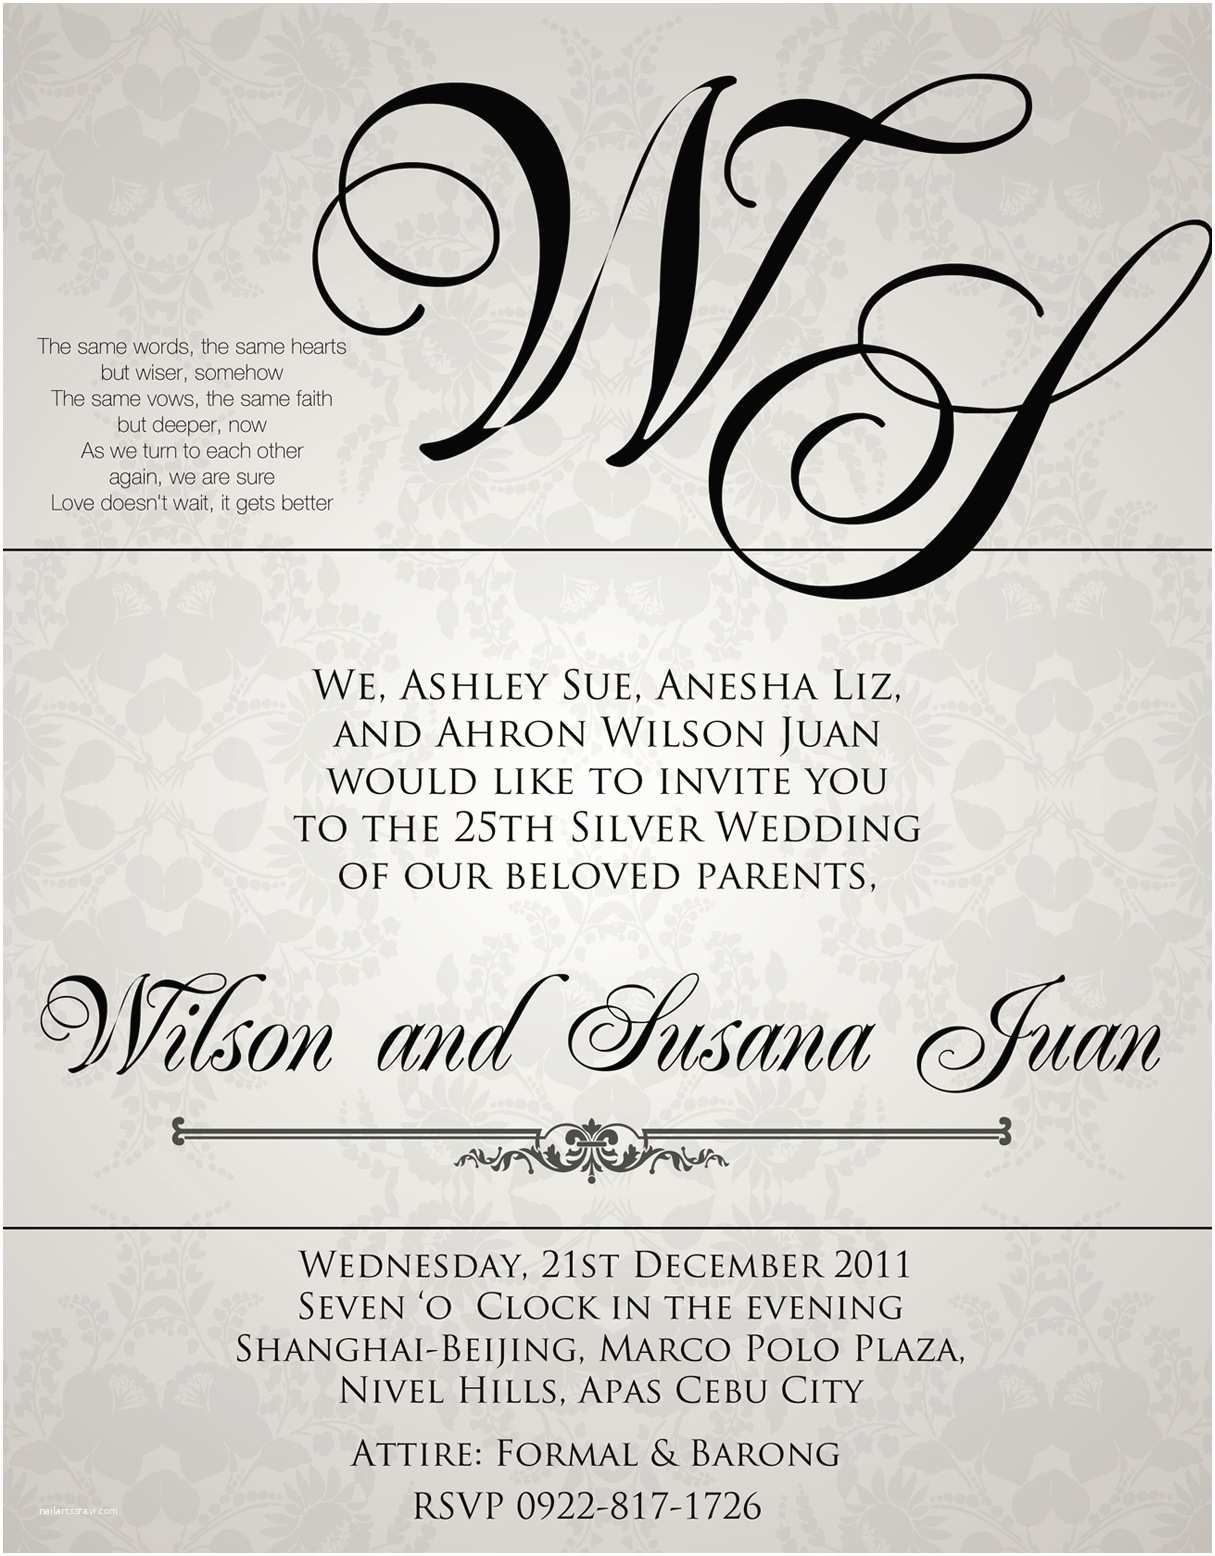 Wedding Invitation Sample Wording Wedding Invitation Wording Sample — Criolla Brithday